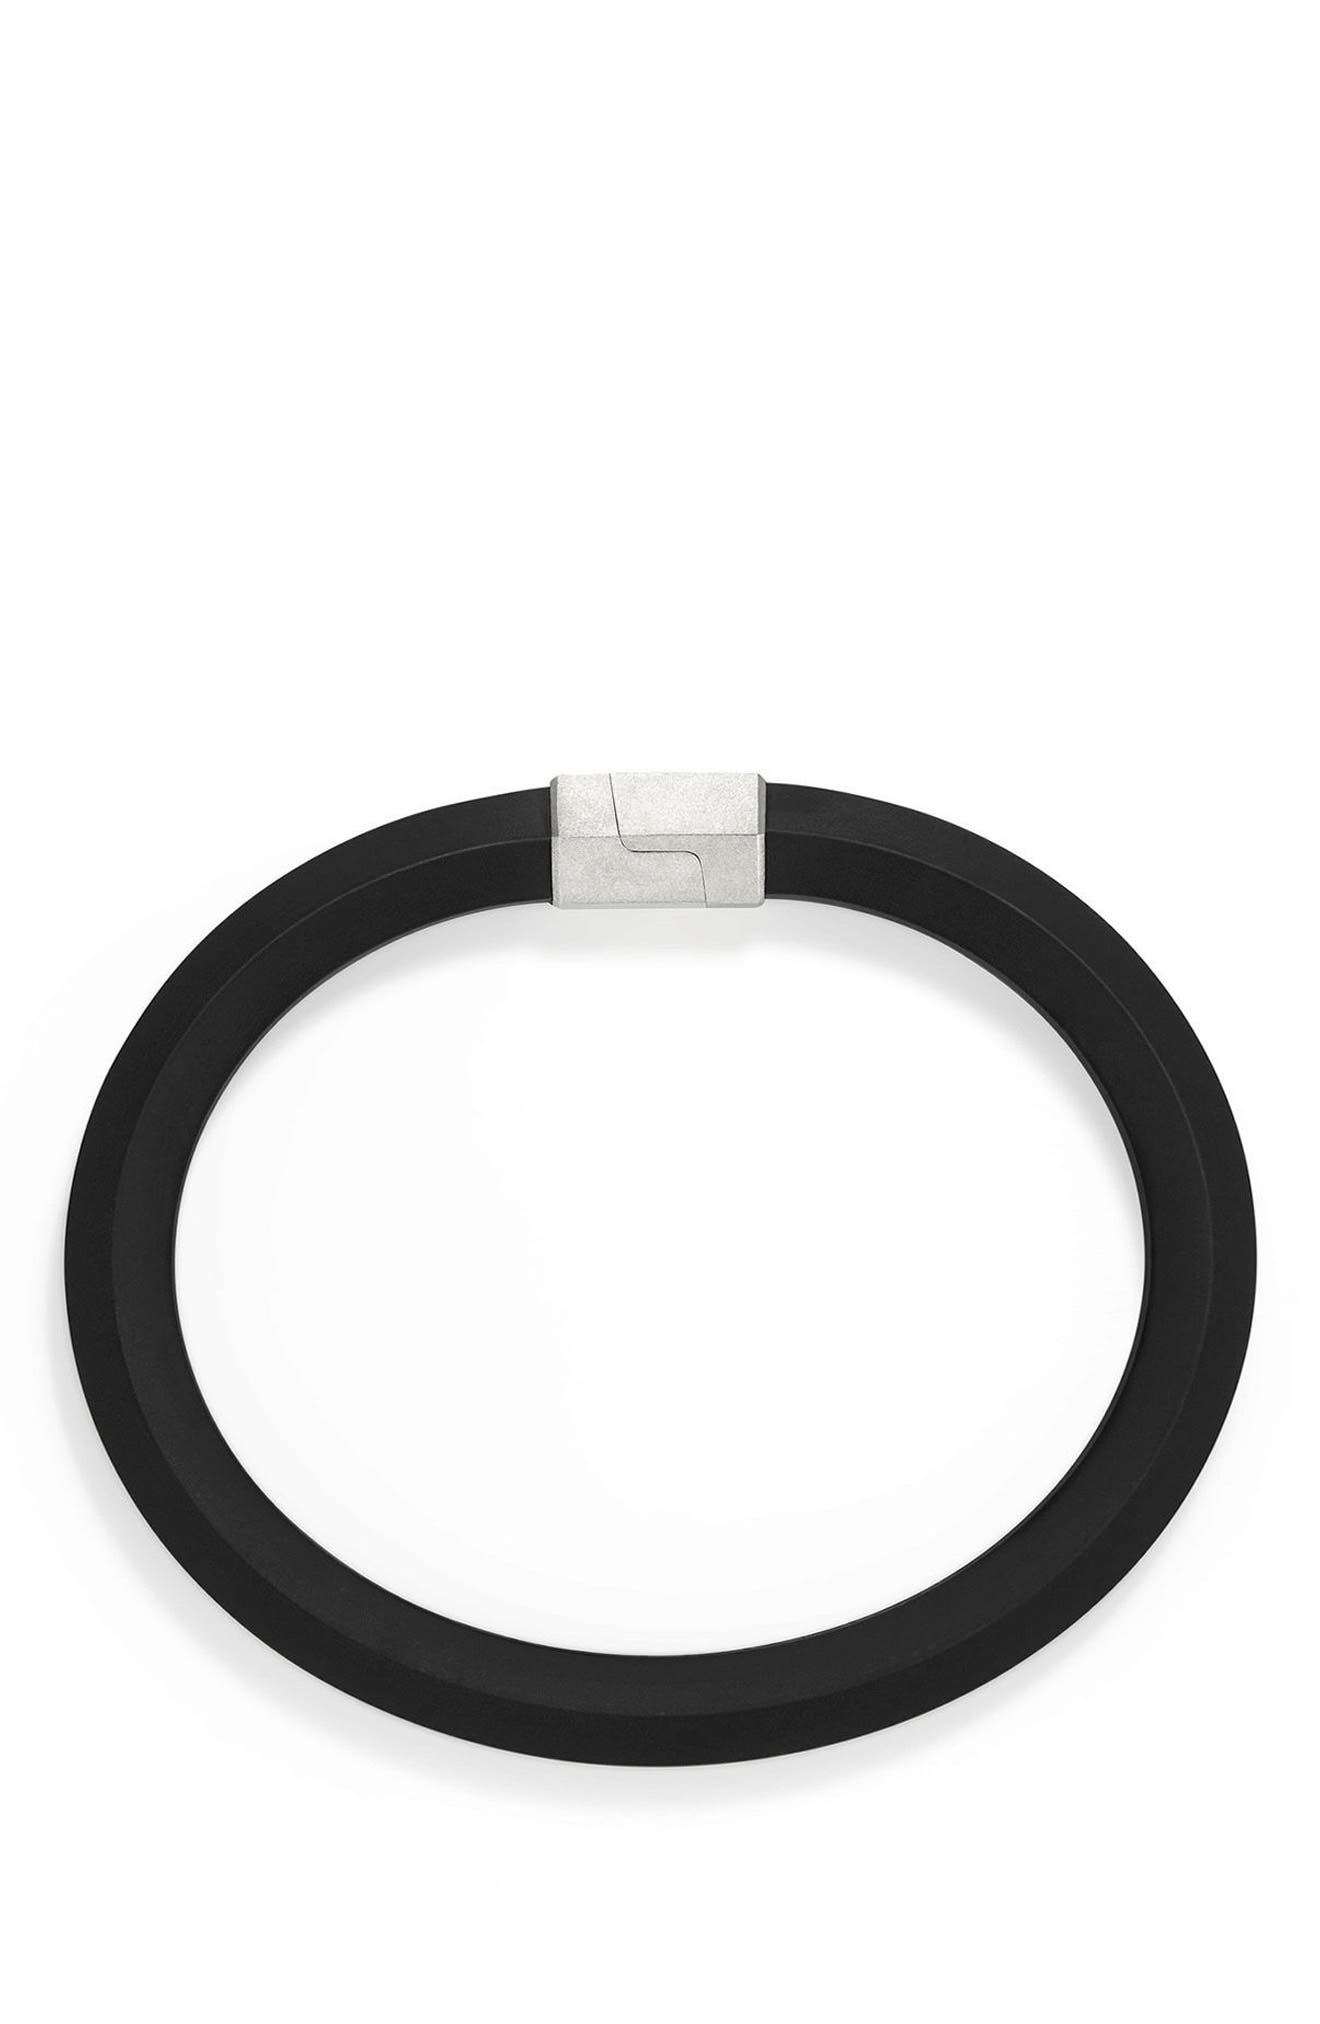 Alternate Image 2  - David Yurman Streamline Rubber ID Bracelet in Black